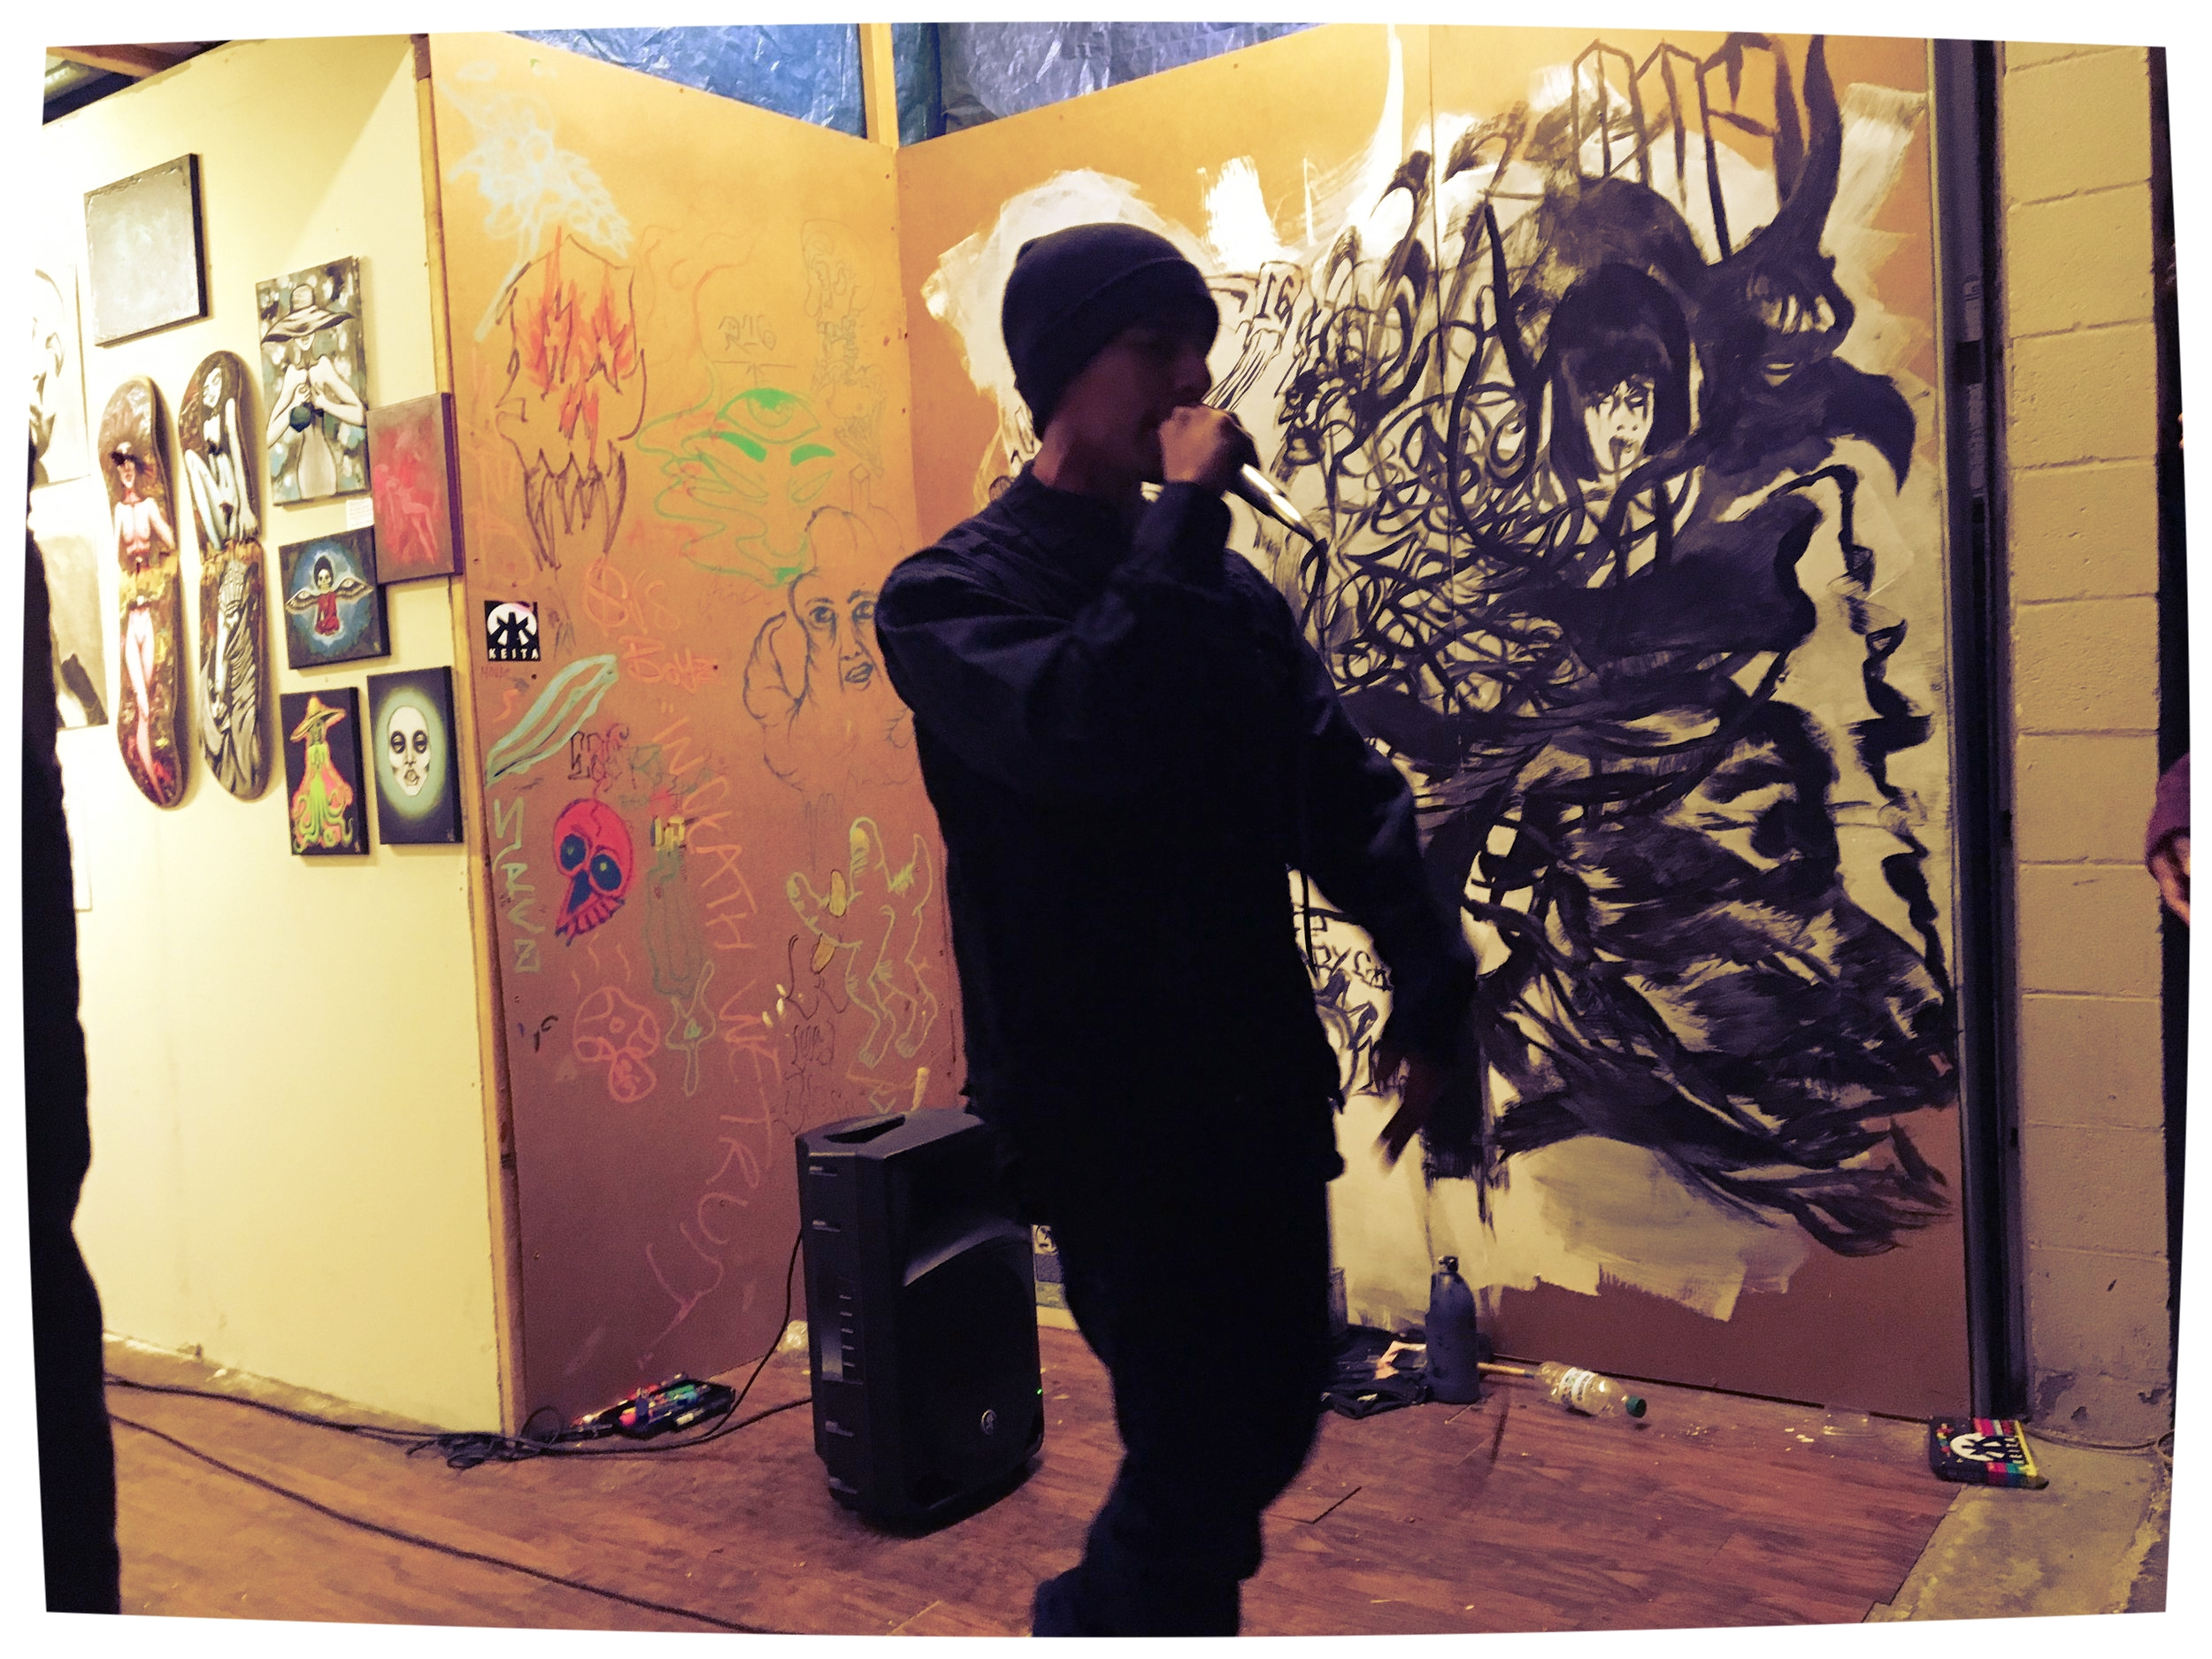 """The piece to the left of FUDAGOD was a shared effort by  Reaper 16 x Stucky 1 done live during the show. """"we want to vibe with the music, people, & flow... let the art evolve."""" STUCKY 1    < graffiti wall behind speaker. & art by BRUNA K. = 2 skateboards & 5 canvas  >"""